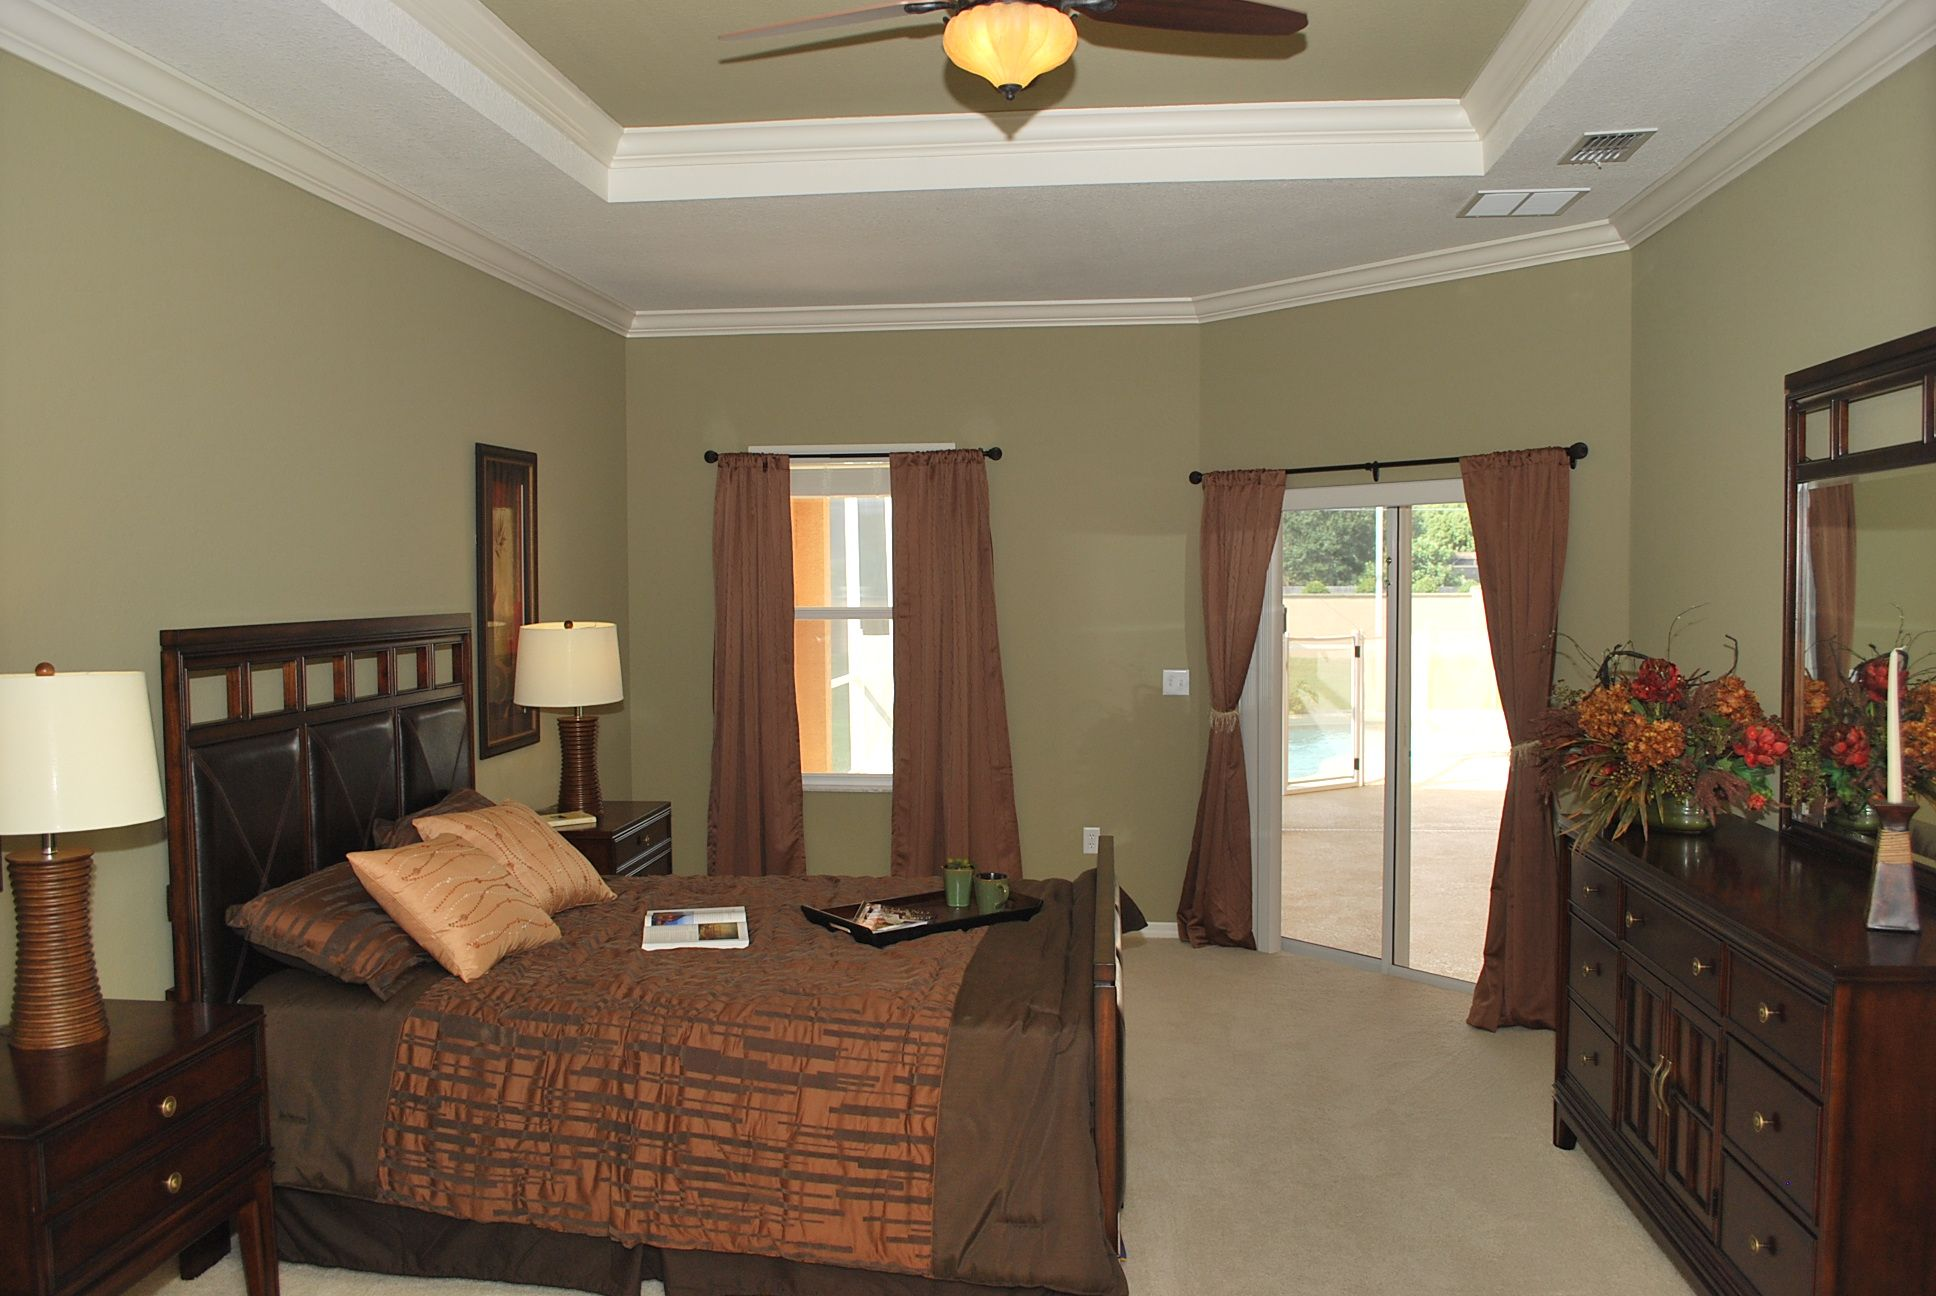 Earth Tones Are A Time Honored Color Scheme And This Sage Green Wall Color Is Calming In A Bedroom Highland Home Green Wall Color Sage Green Walls Wall Color